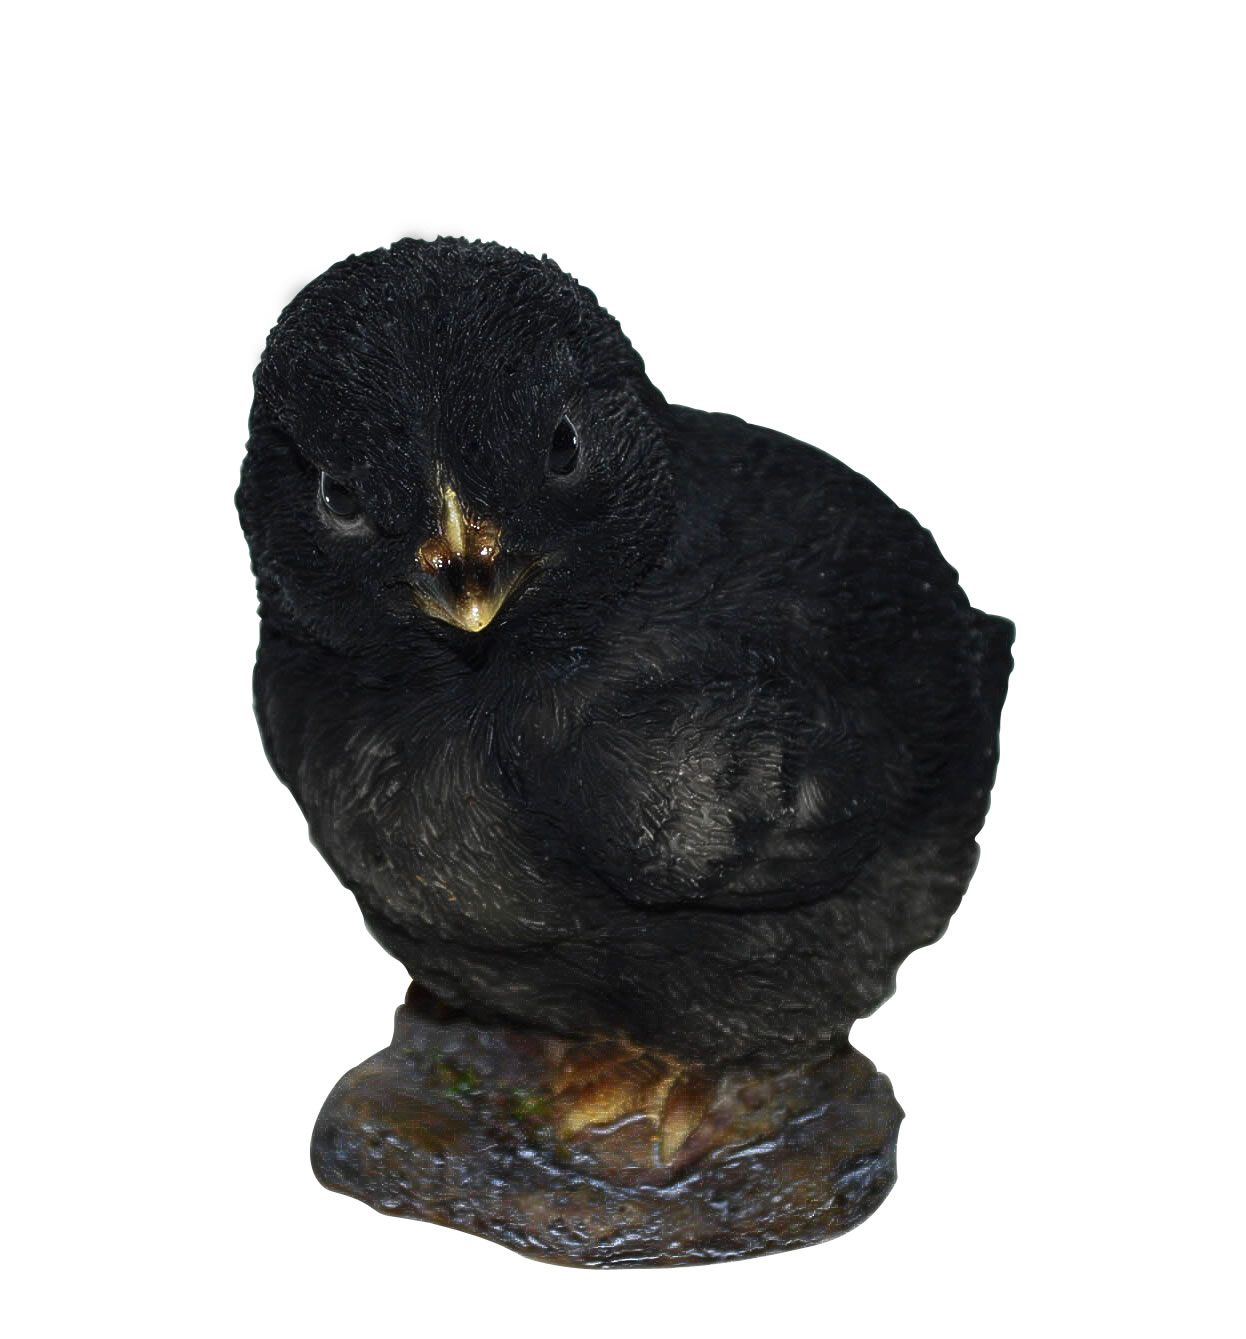 Vivid Black Easter Chick Lifelike Resin Garden Ornament